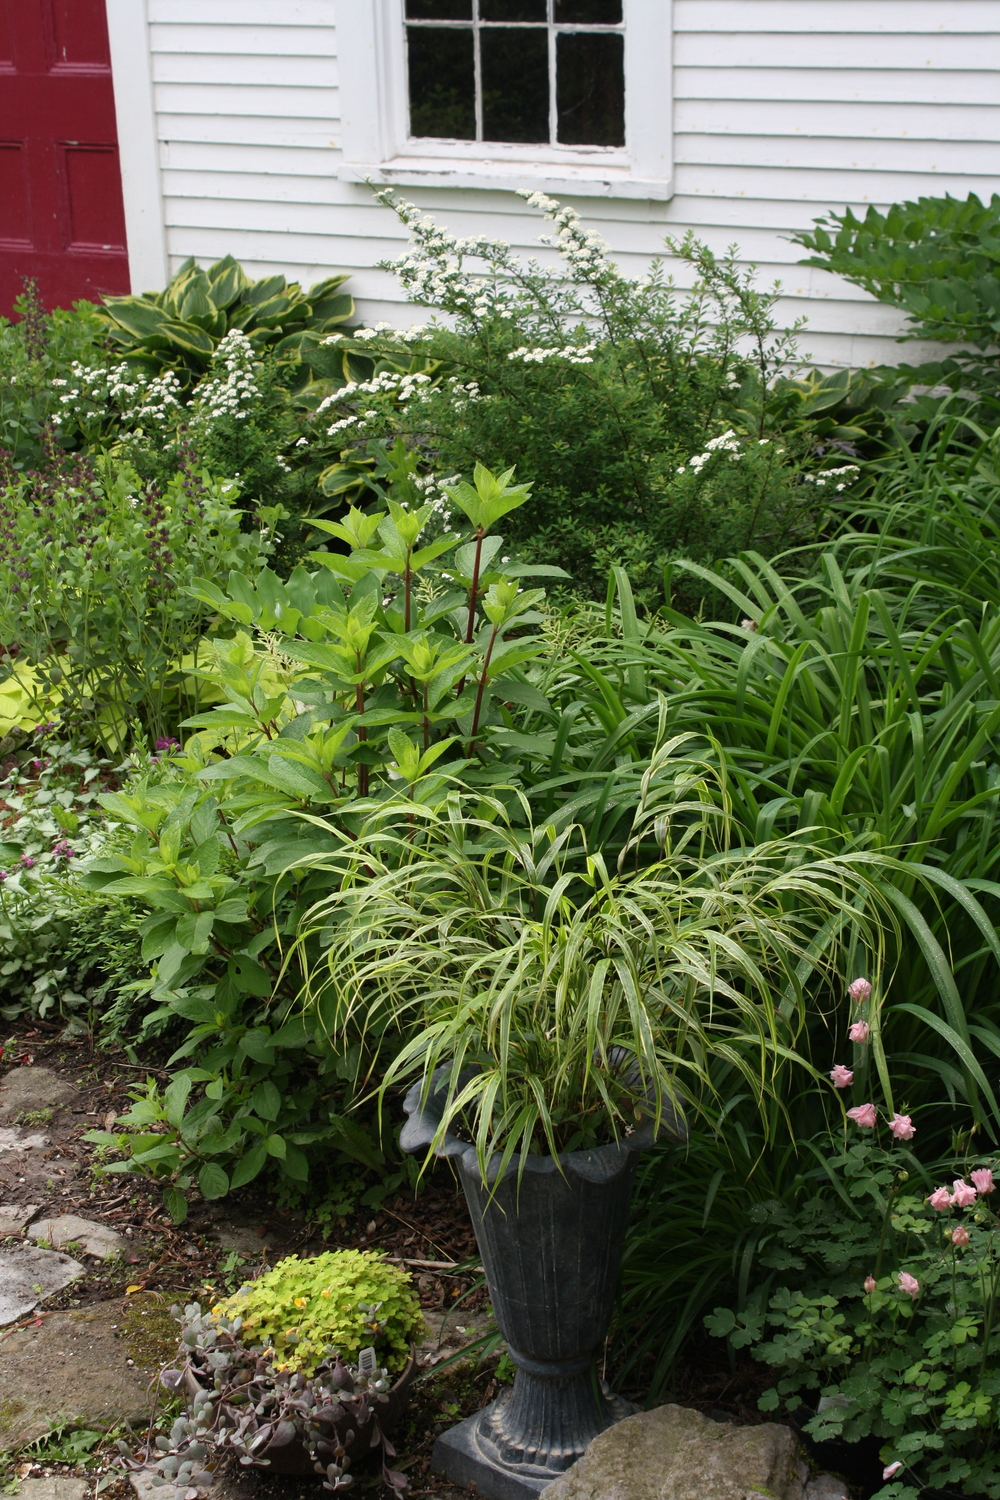 Pots of Hakonechloa and 'Molten Lava' Oxalis provide texture and an extra pop of color out front.